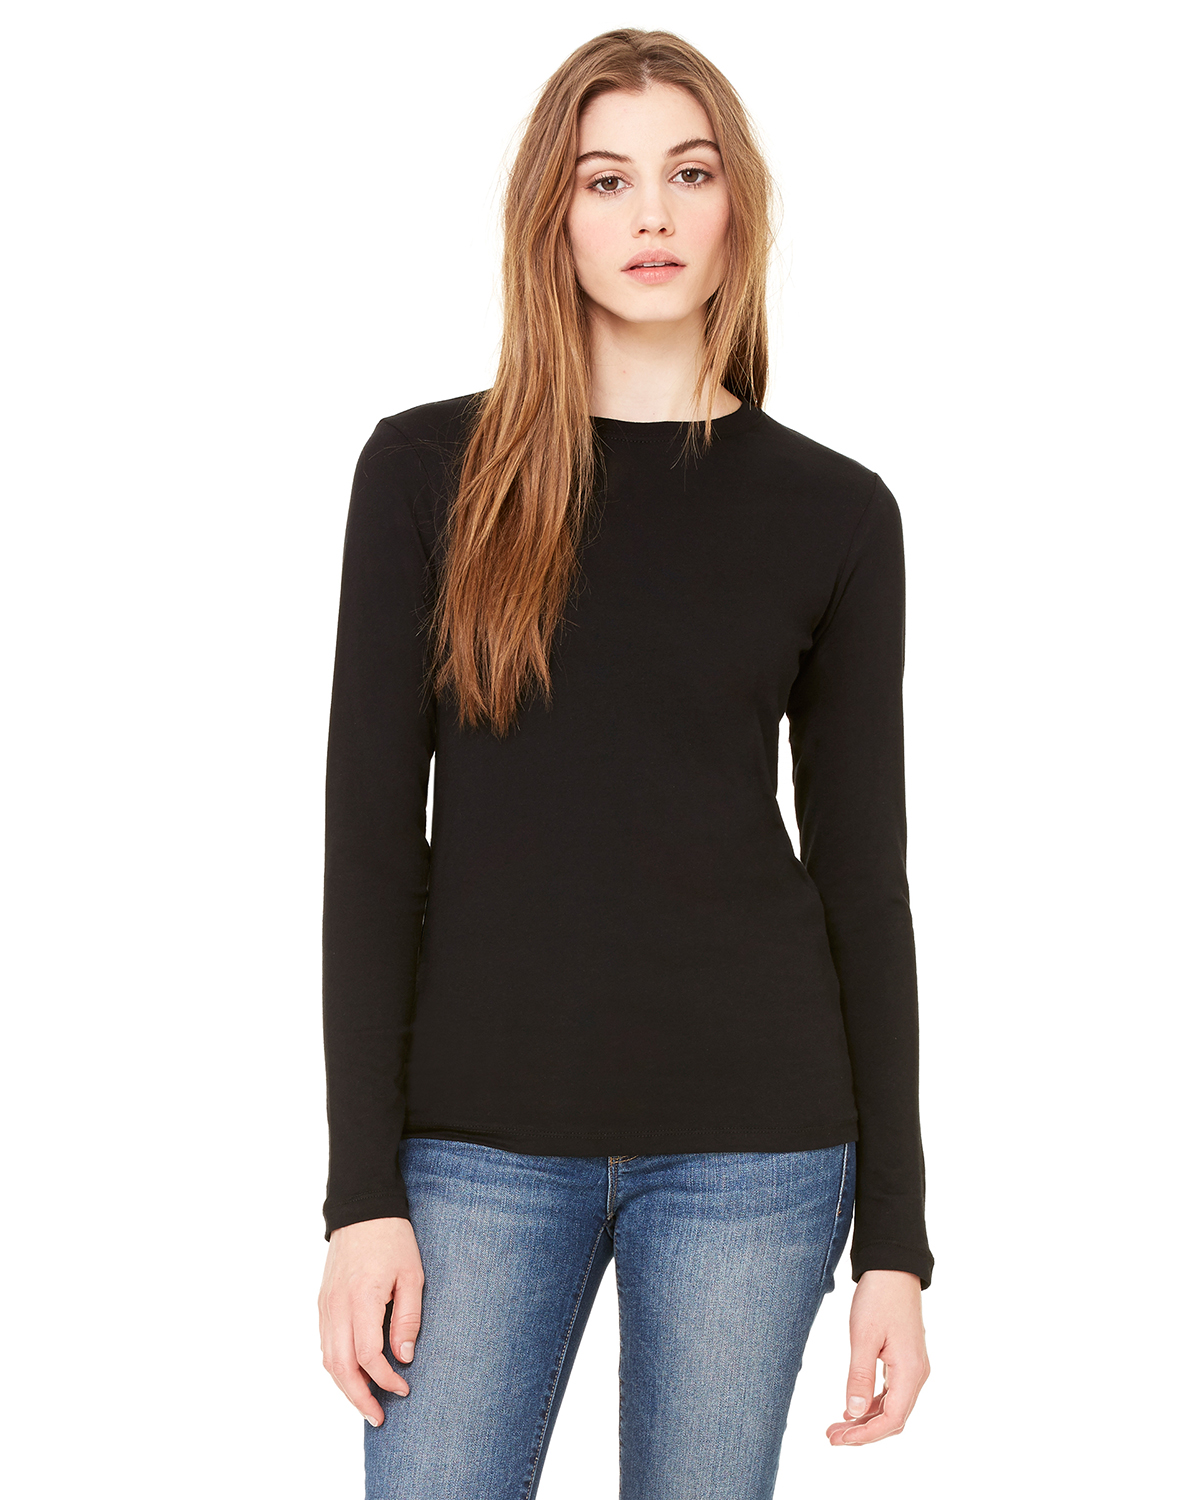 bella 6500 Ladies' Long Sleeve Crewneck Jersey T-Shirt